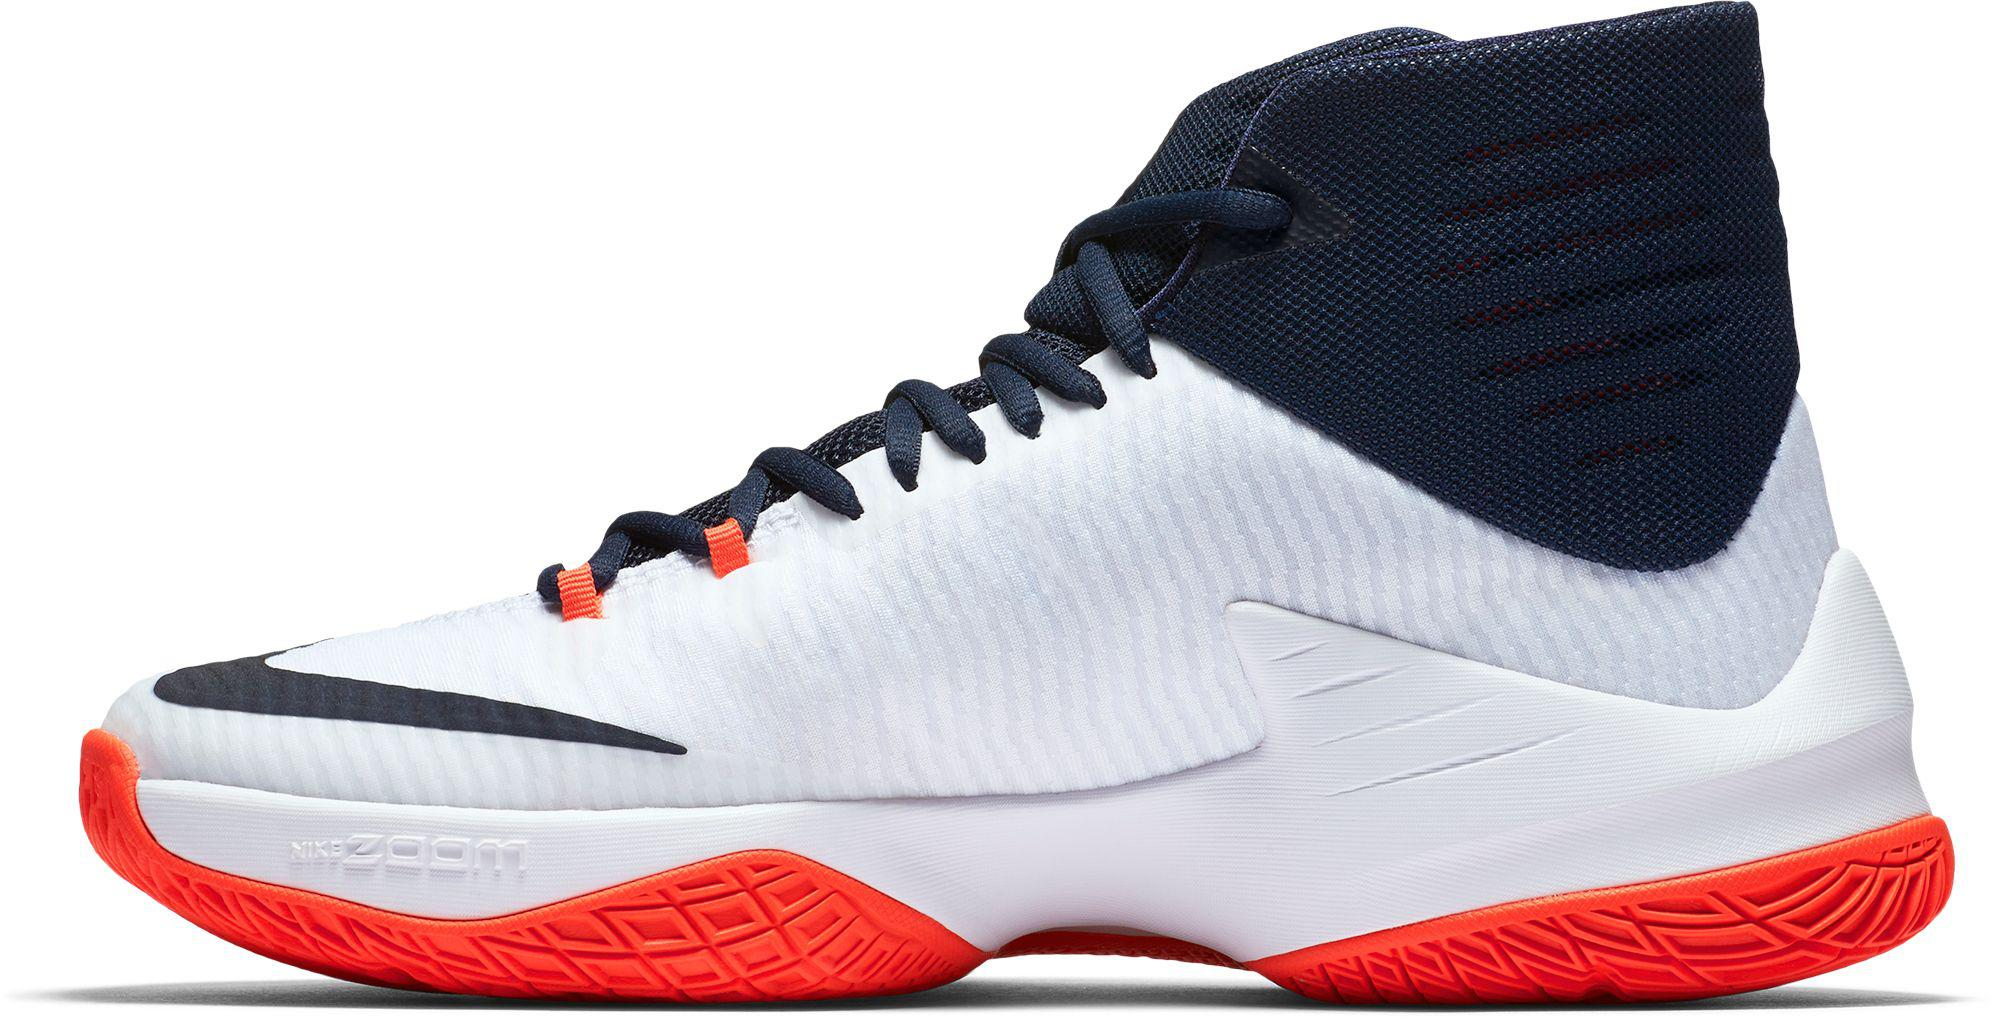 new style b3927 22e03 nike-WhiteObsidian-Zoom-Clear-Out-Basketball-Shoes.jpeg